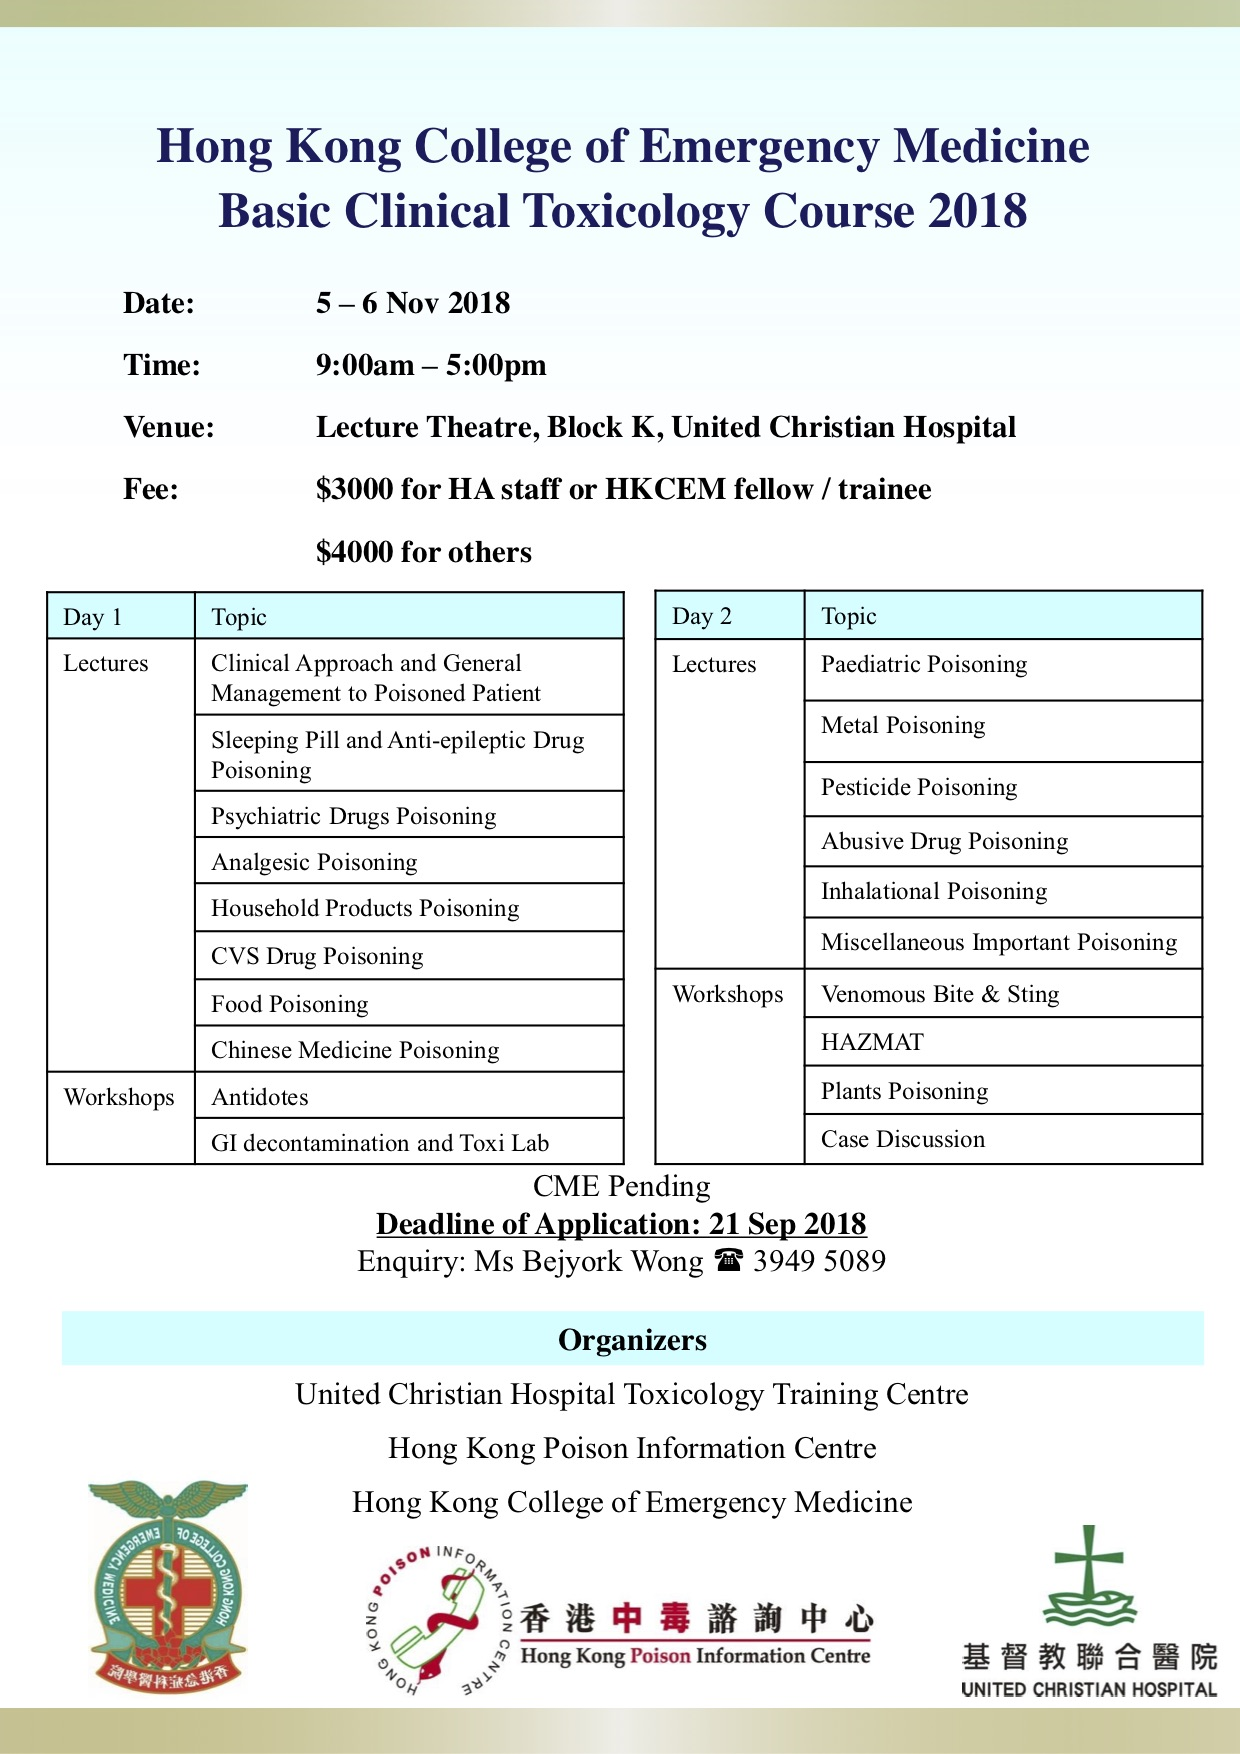 Basic clinical toxicology course 2018 poster